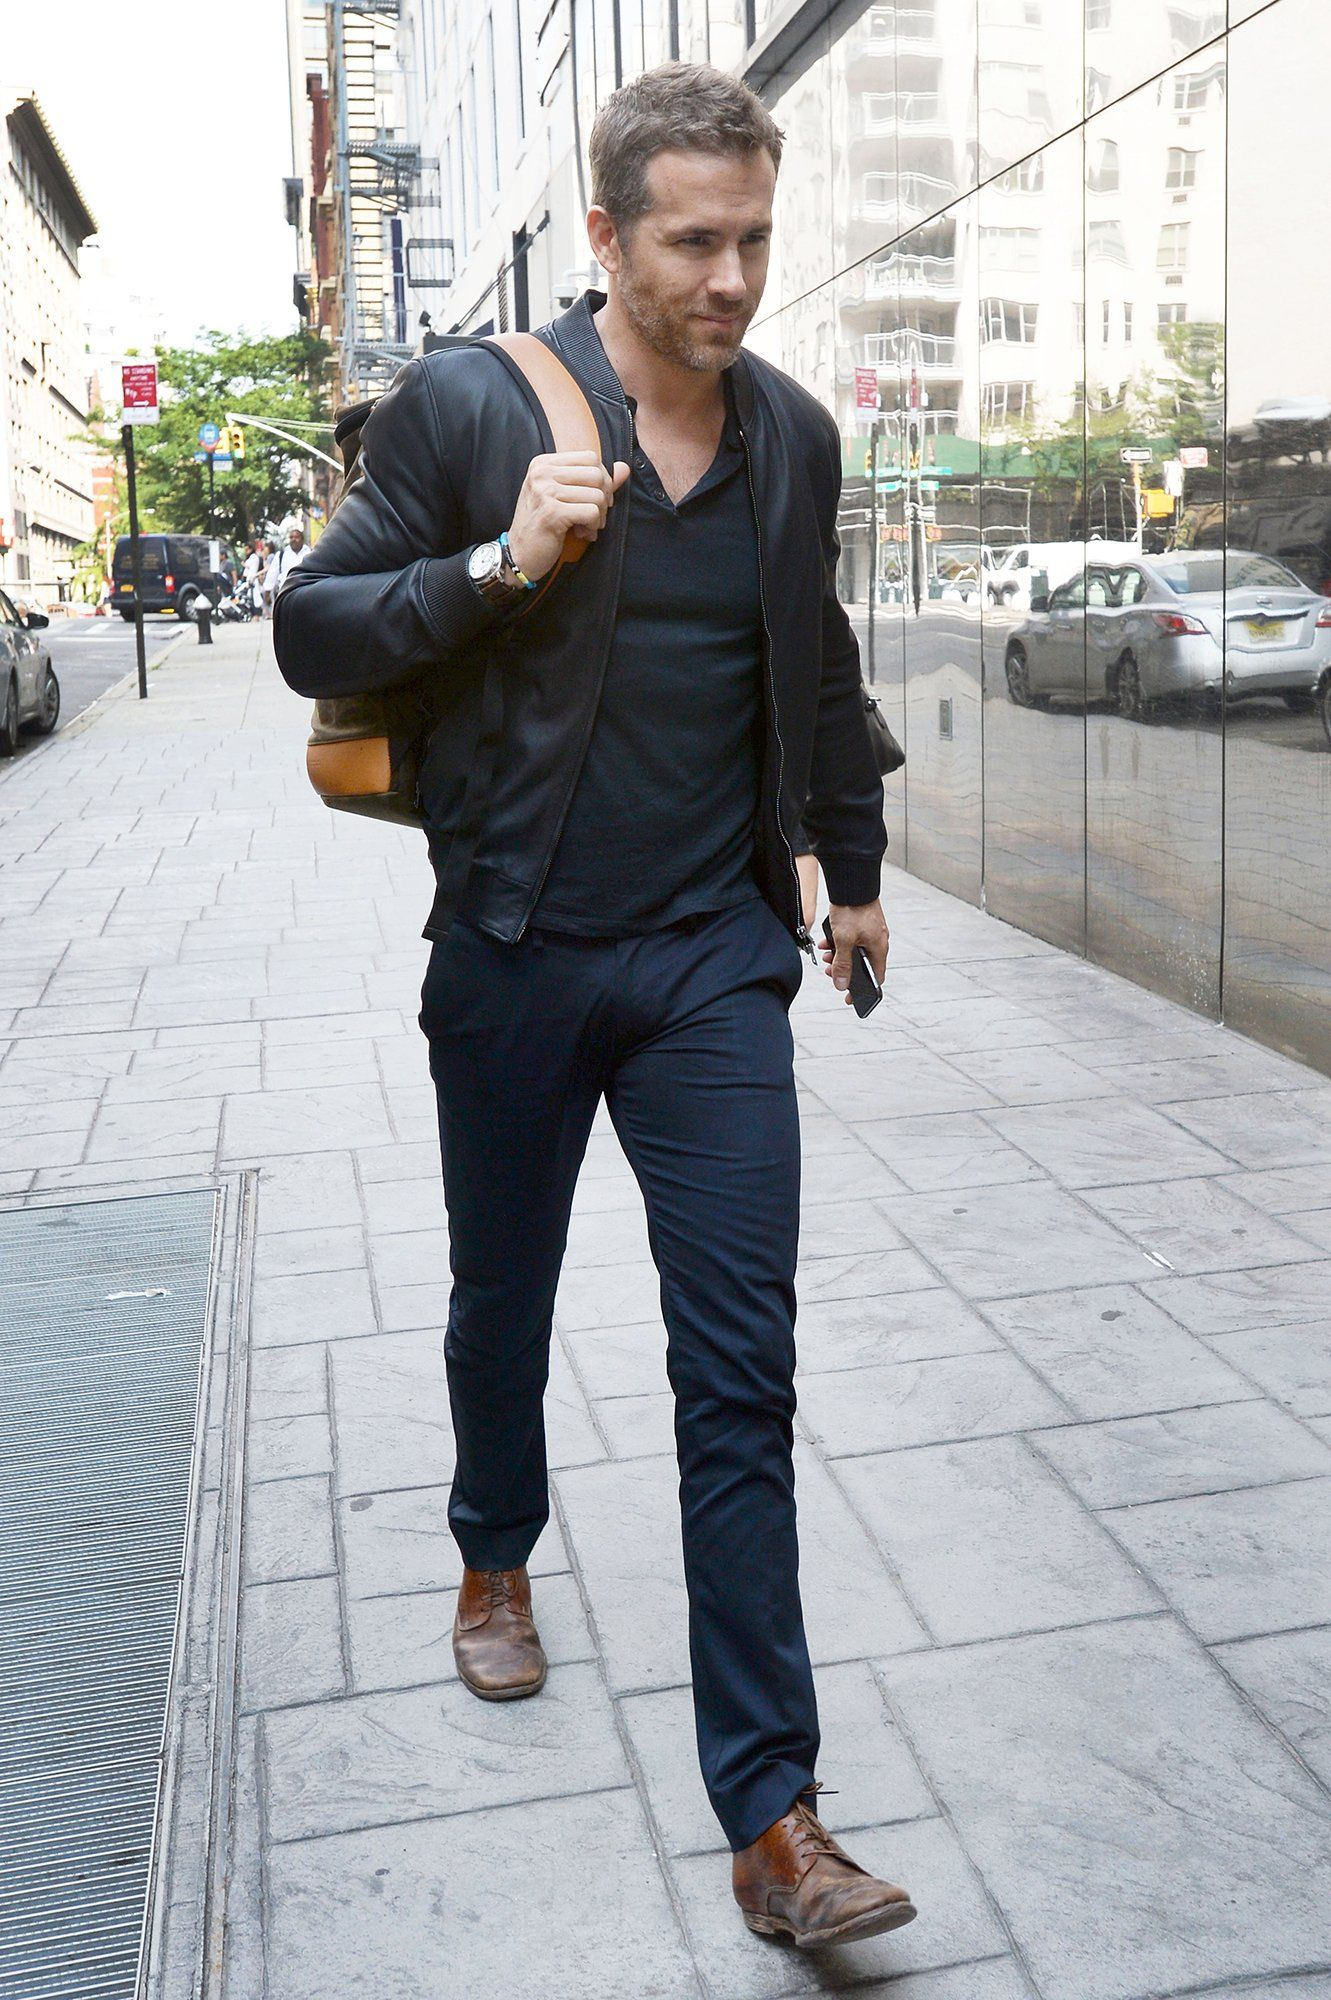 40b5bb8ea6 The Week in Style: 07.10.15 | GQ Ryan Reynolds casual Friday, navy  monochrome, black leather bomber jacket, pants, Henley, backpack brown shoes